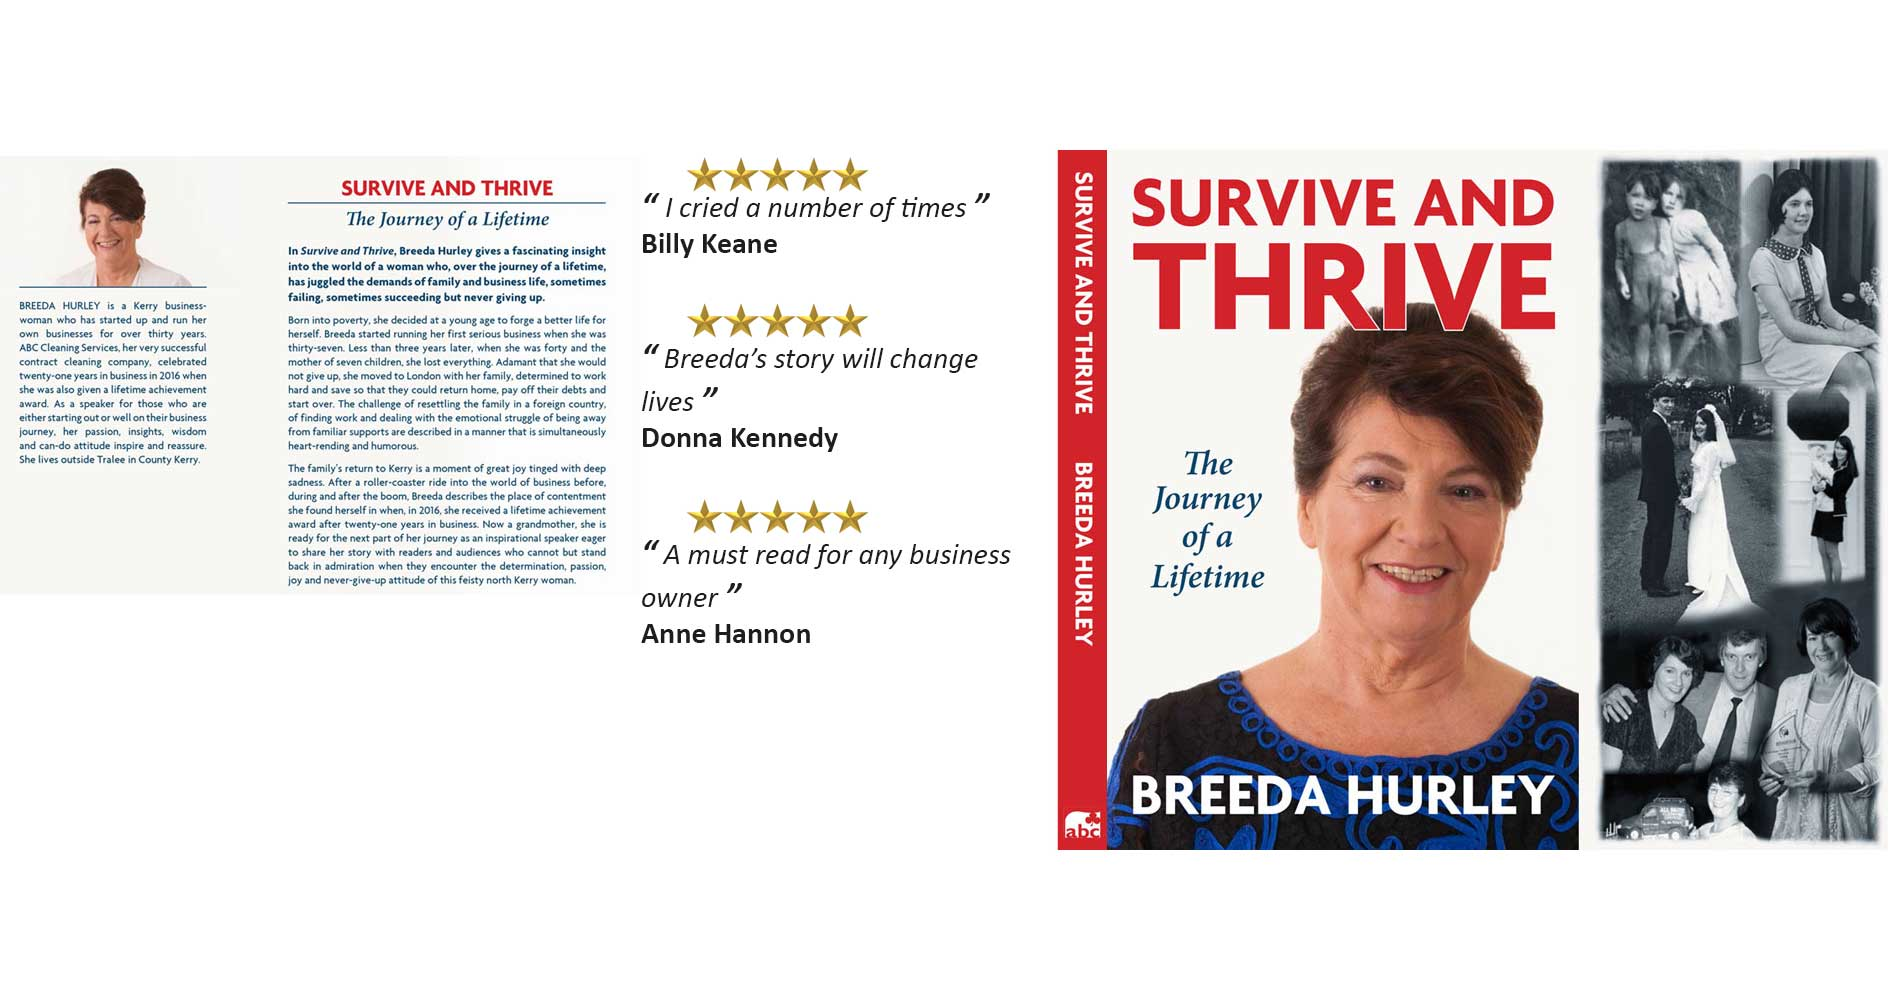 Breeda Hurley, Survive and Thrive